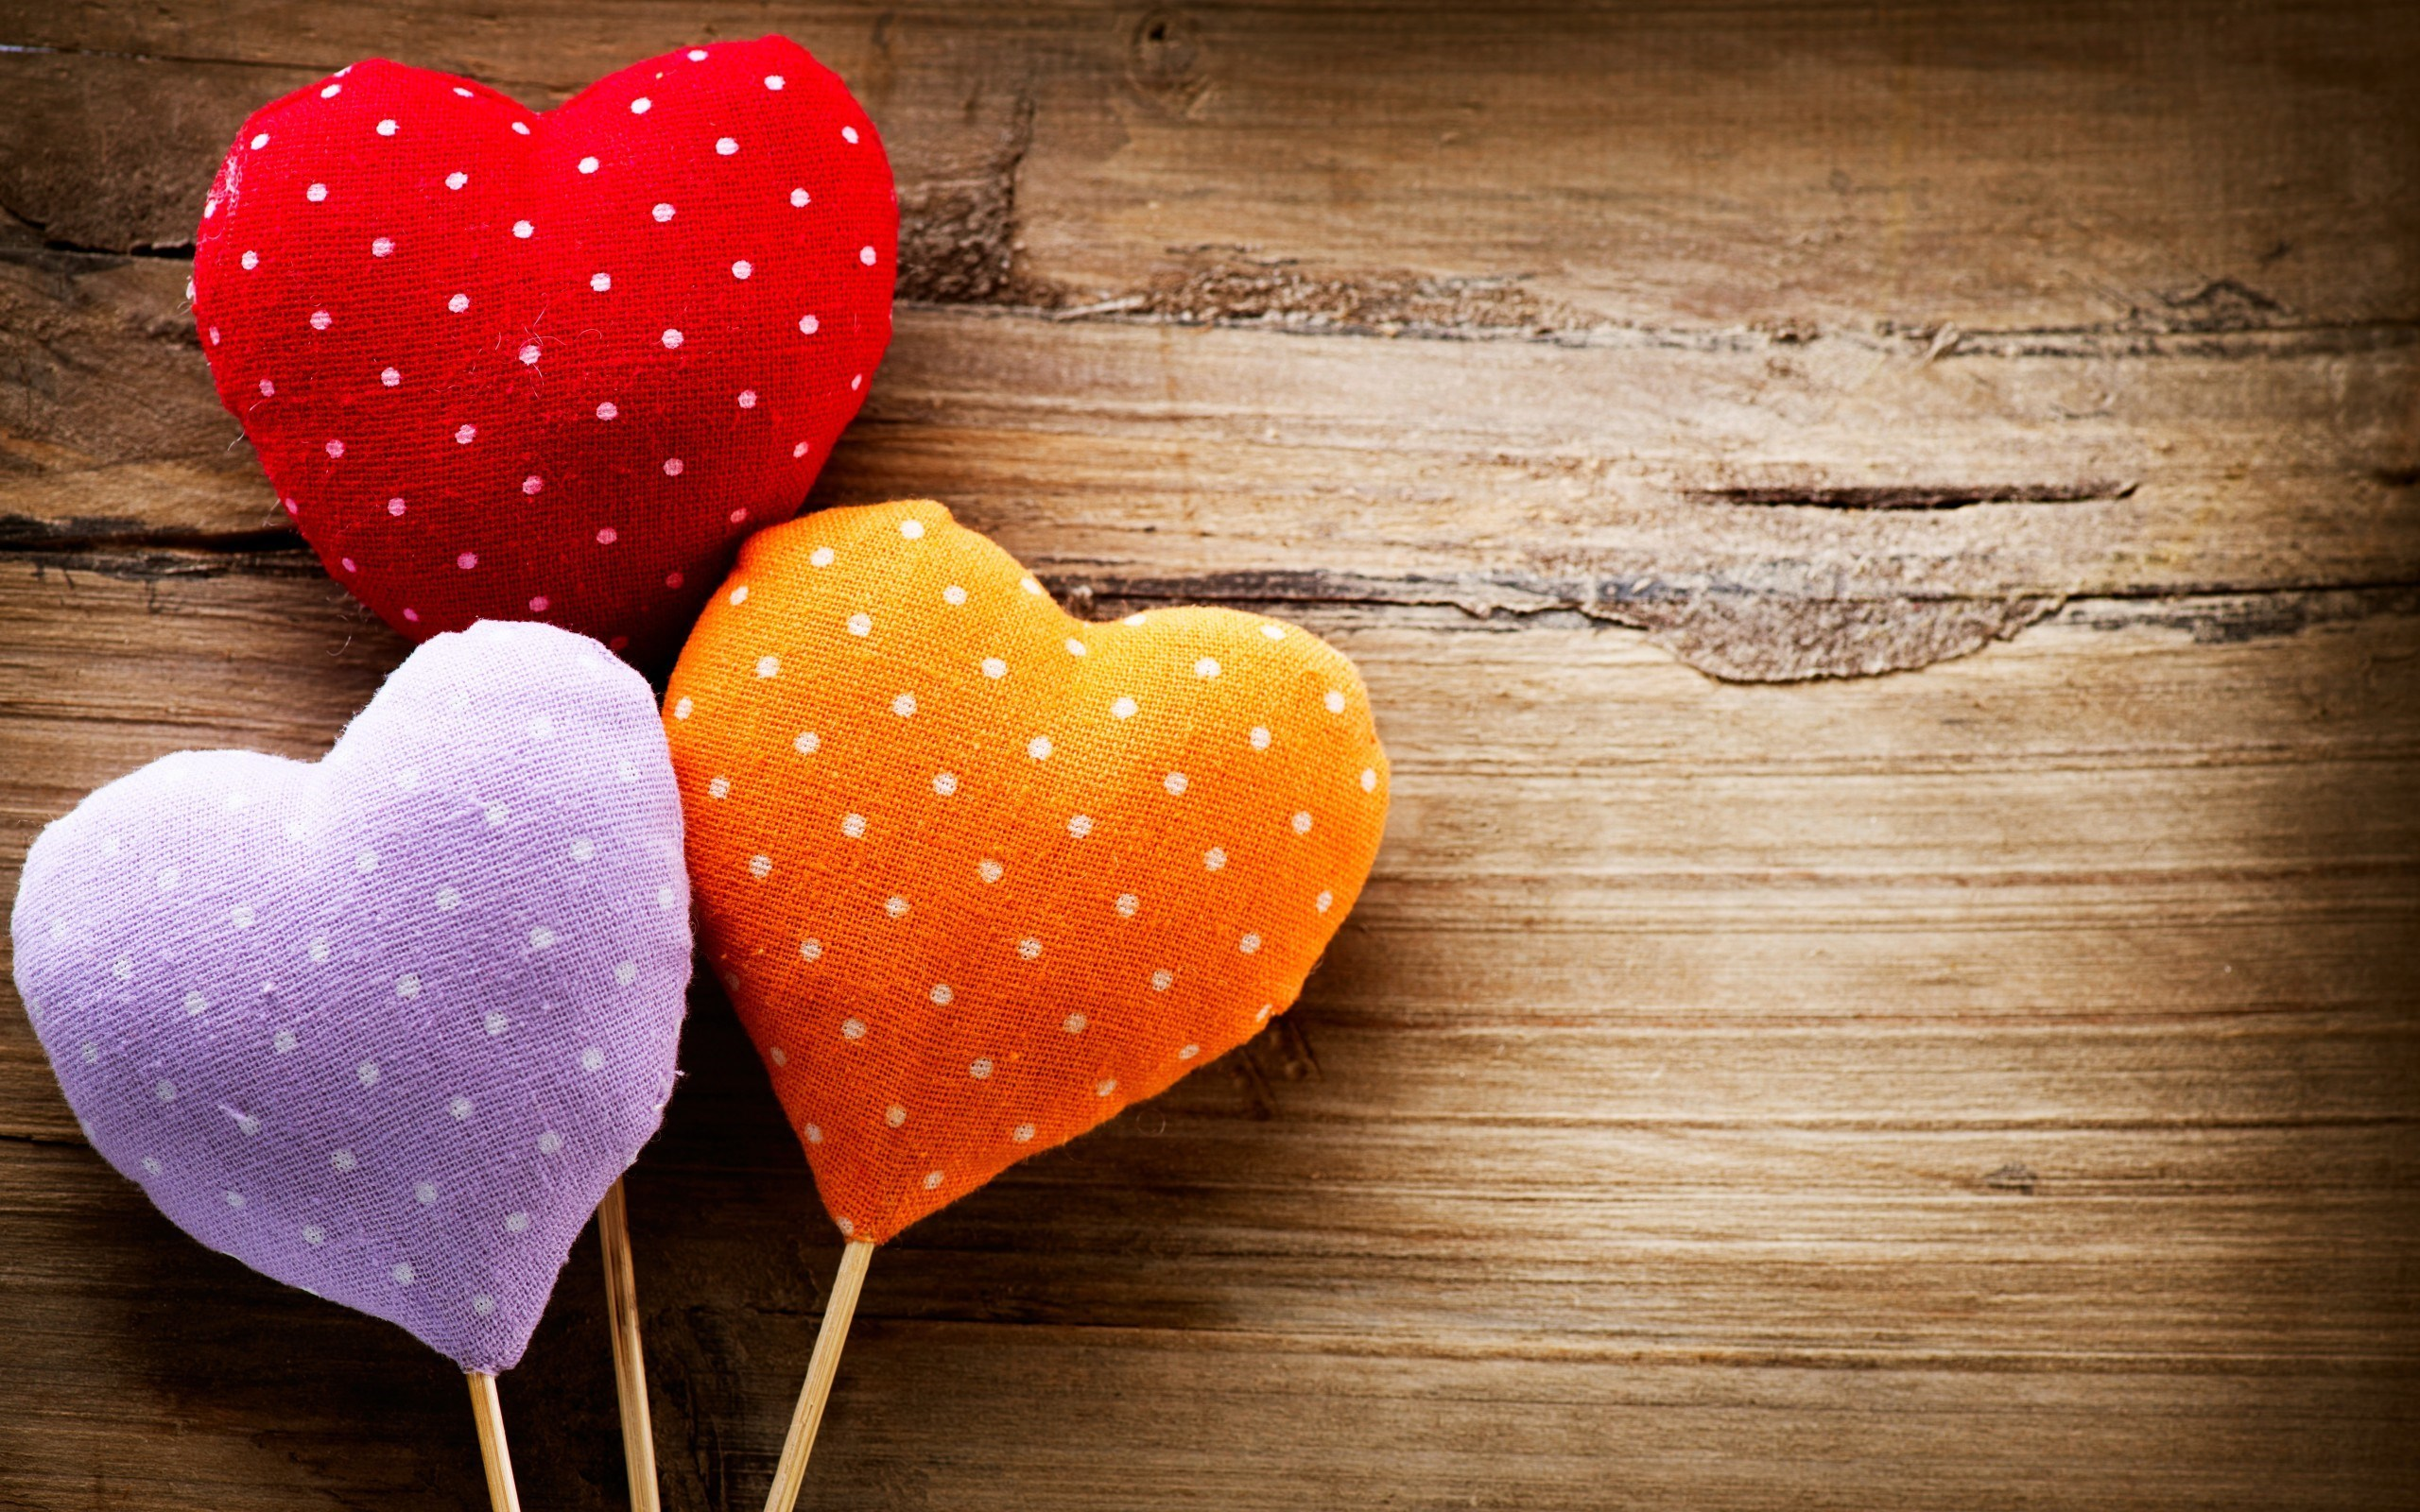 colorful hearts love mood hd wallpaper | Top Wallpapers